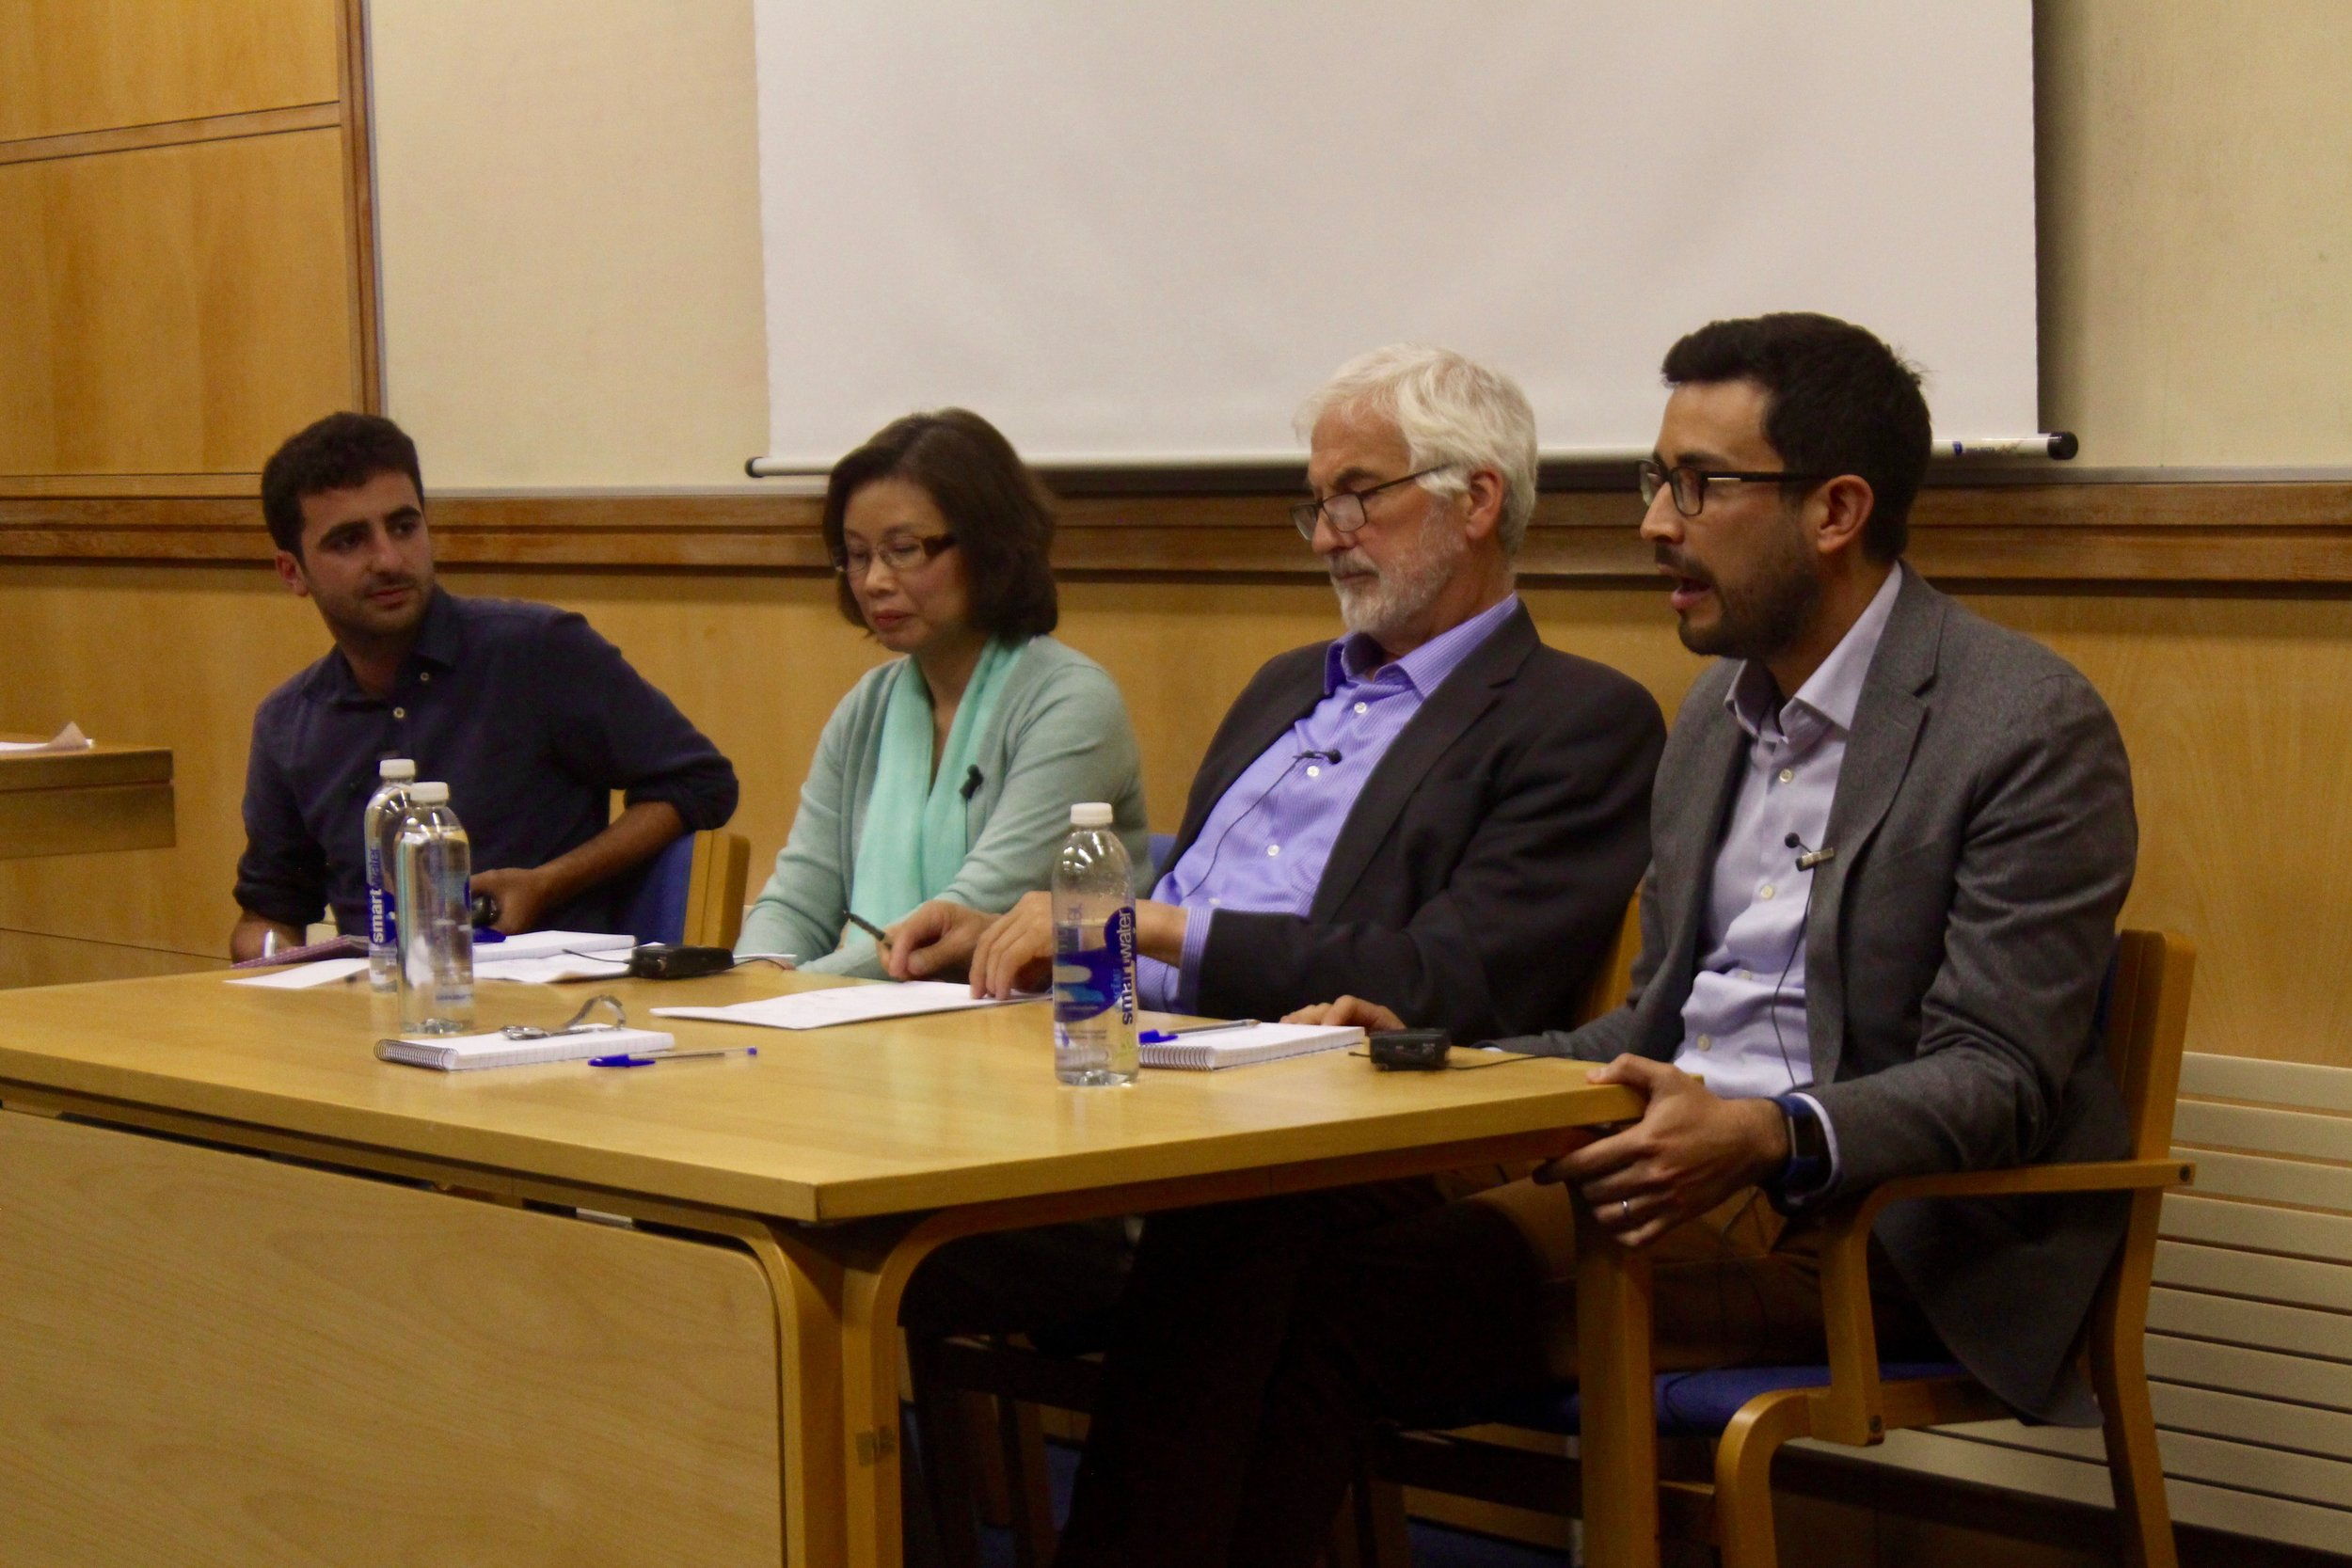 Pictured (from left to right): Michael Blake, Xiaolan Fu, Tony Venables, and Alejandro Riaño